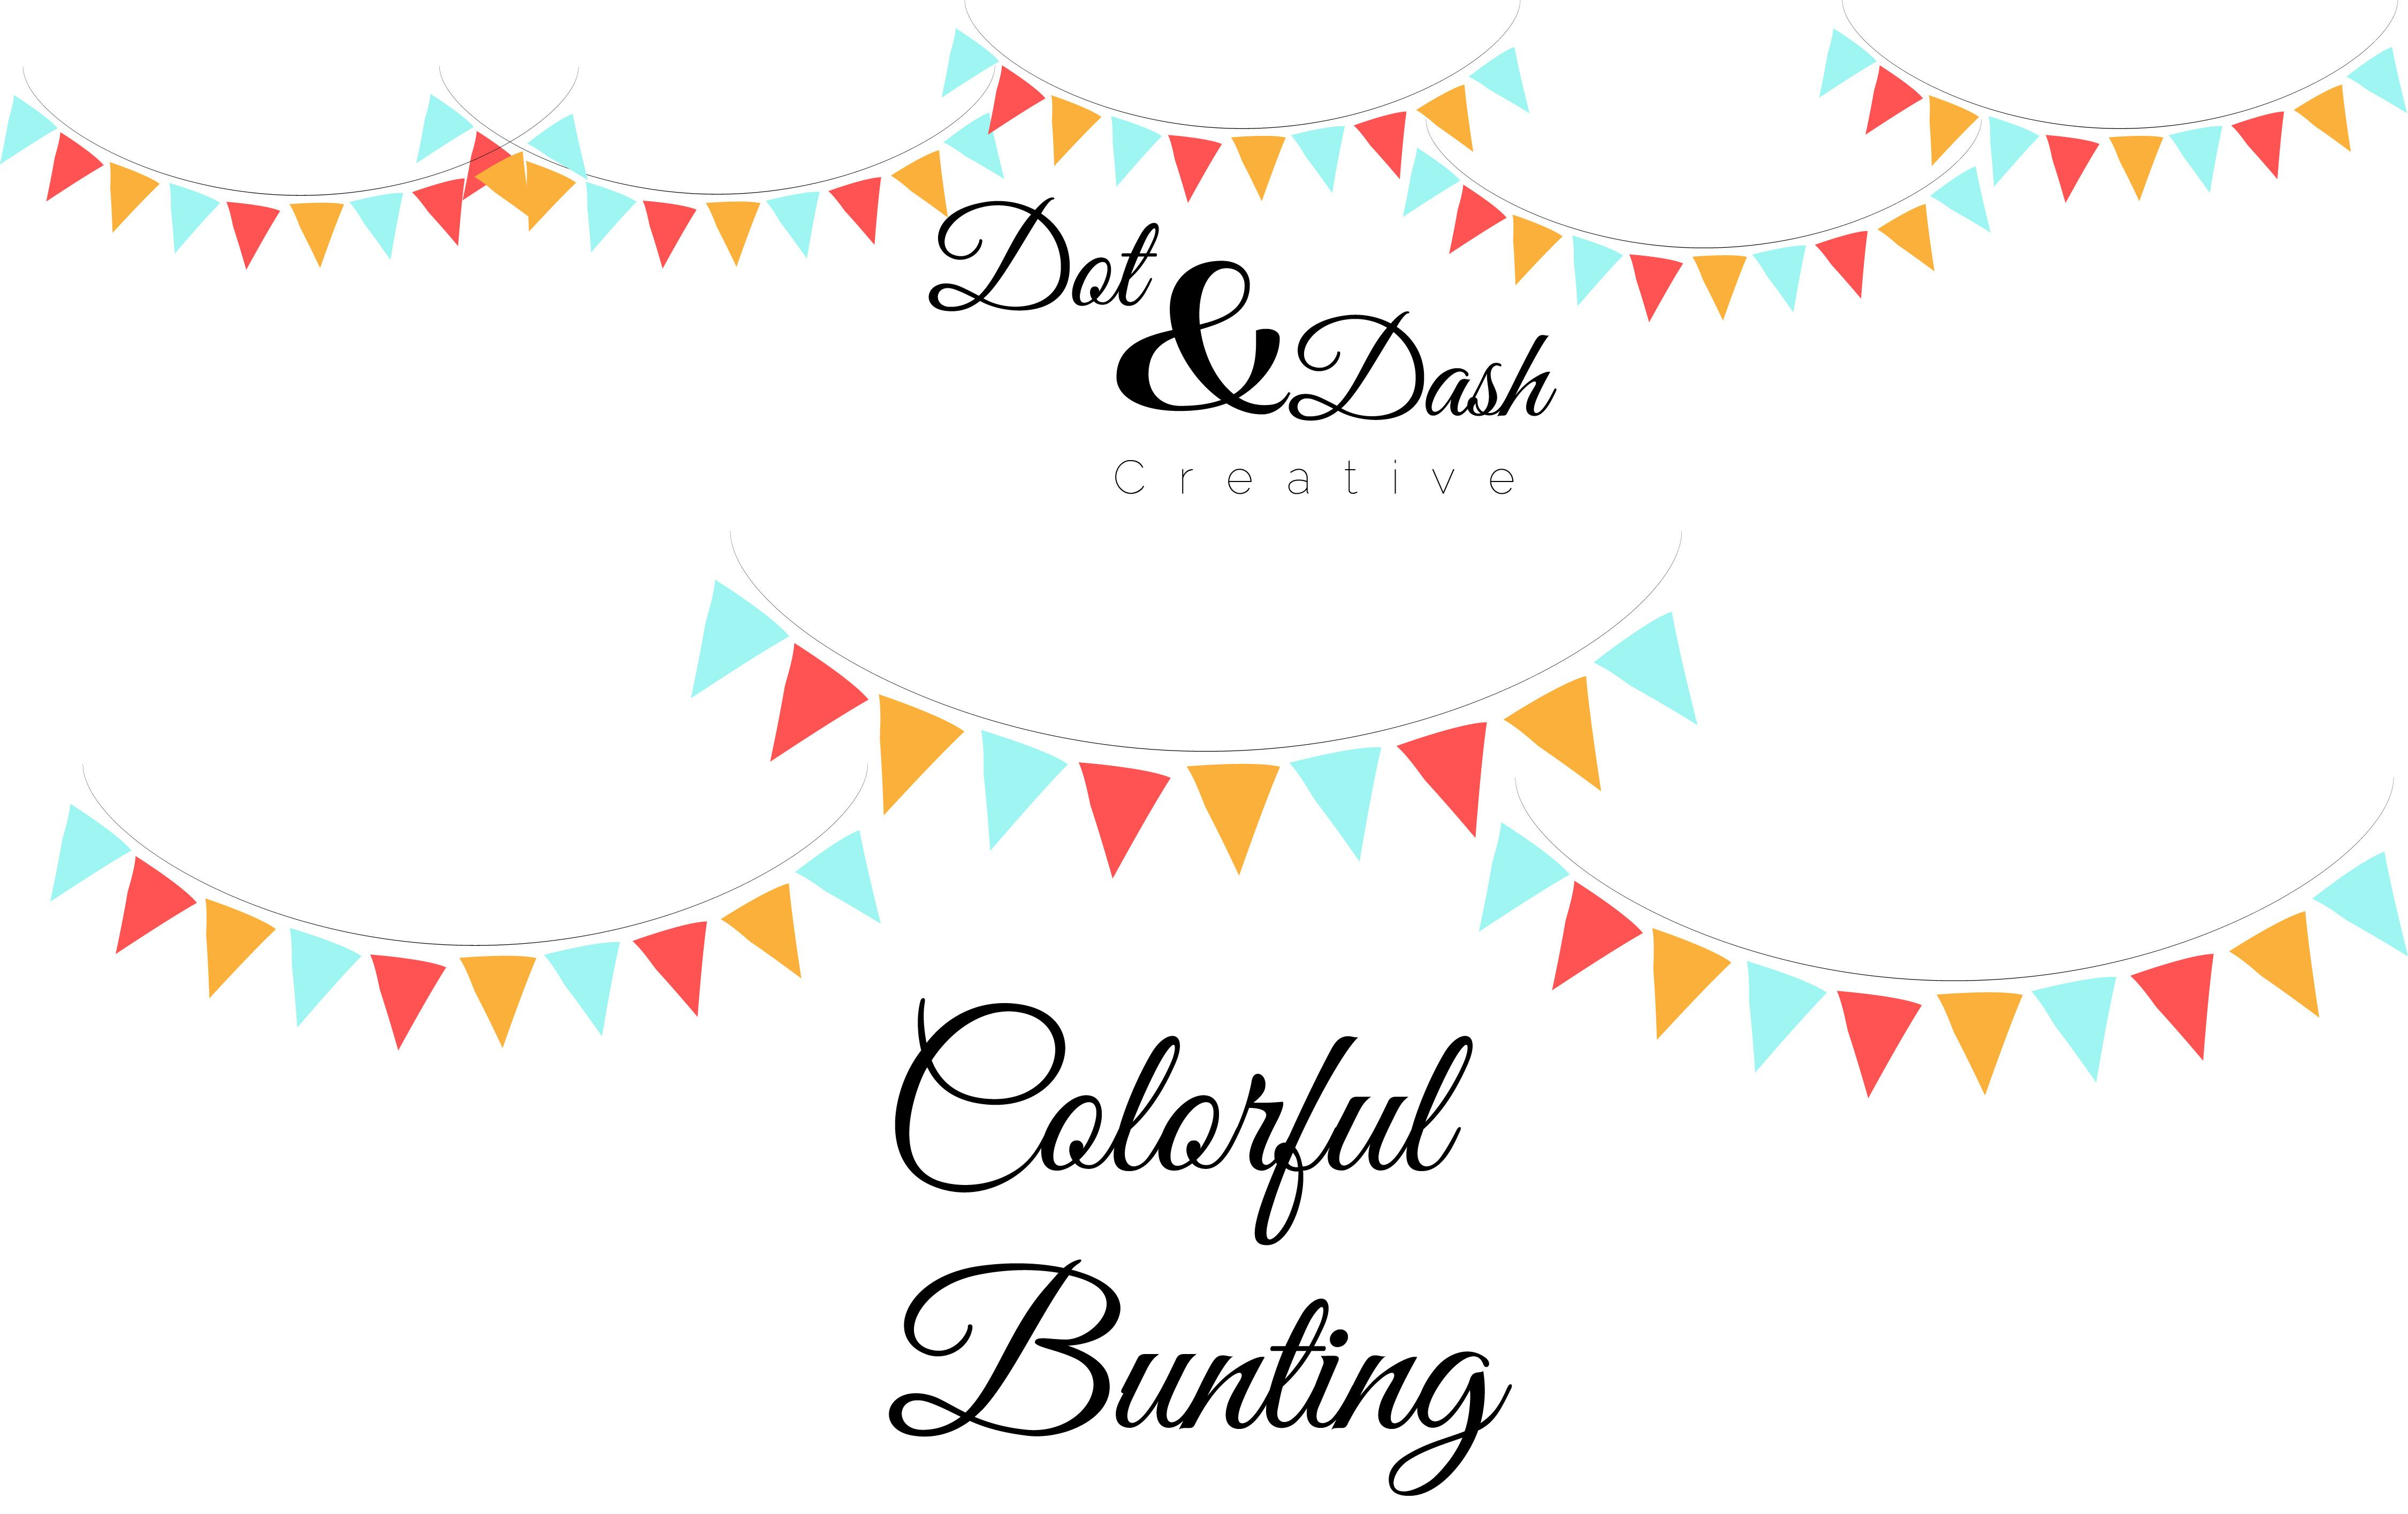 Colorful Bunting - Vector by Dot and Dash Creative on Creative Market